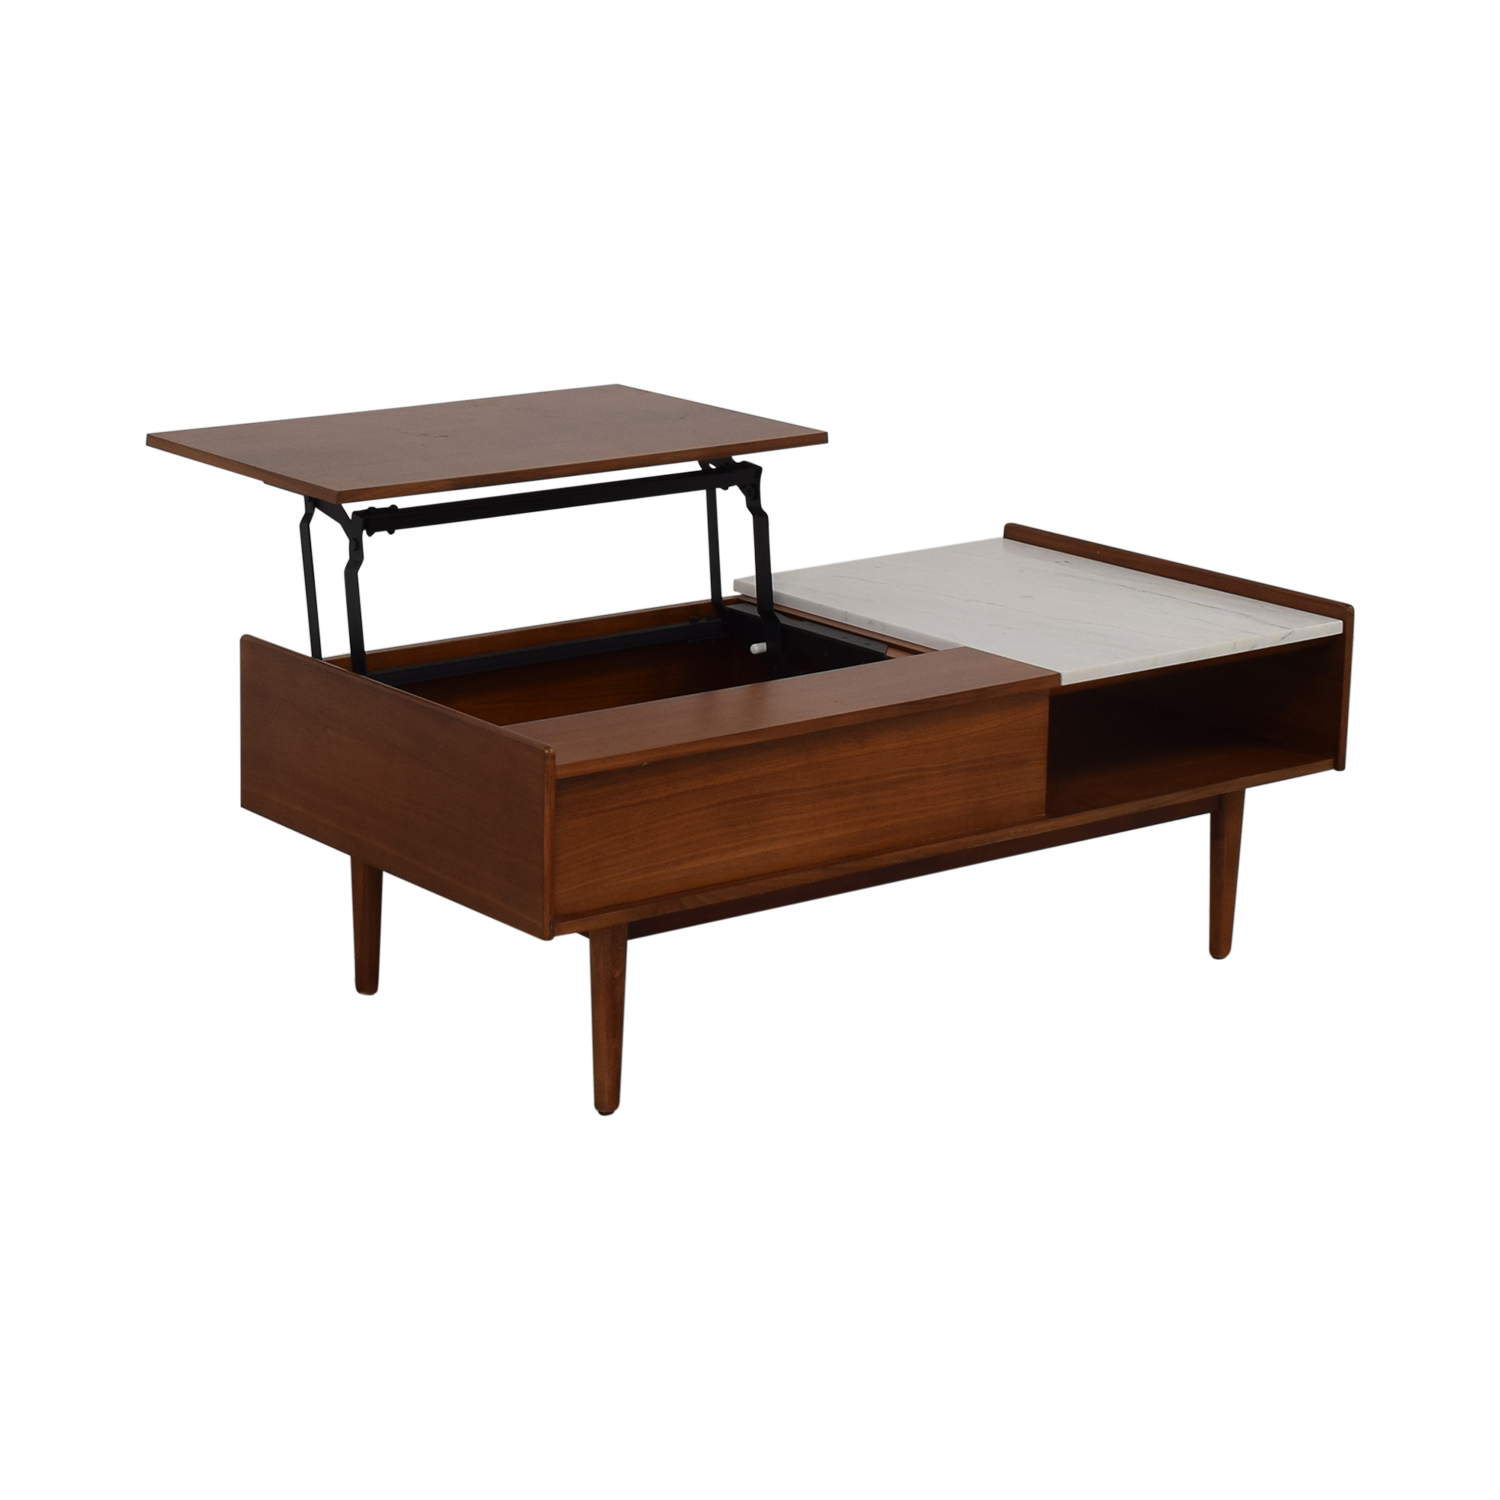 West Elm West Elm Mid Century Pop-Up Coffee Table second hand